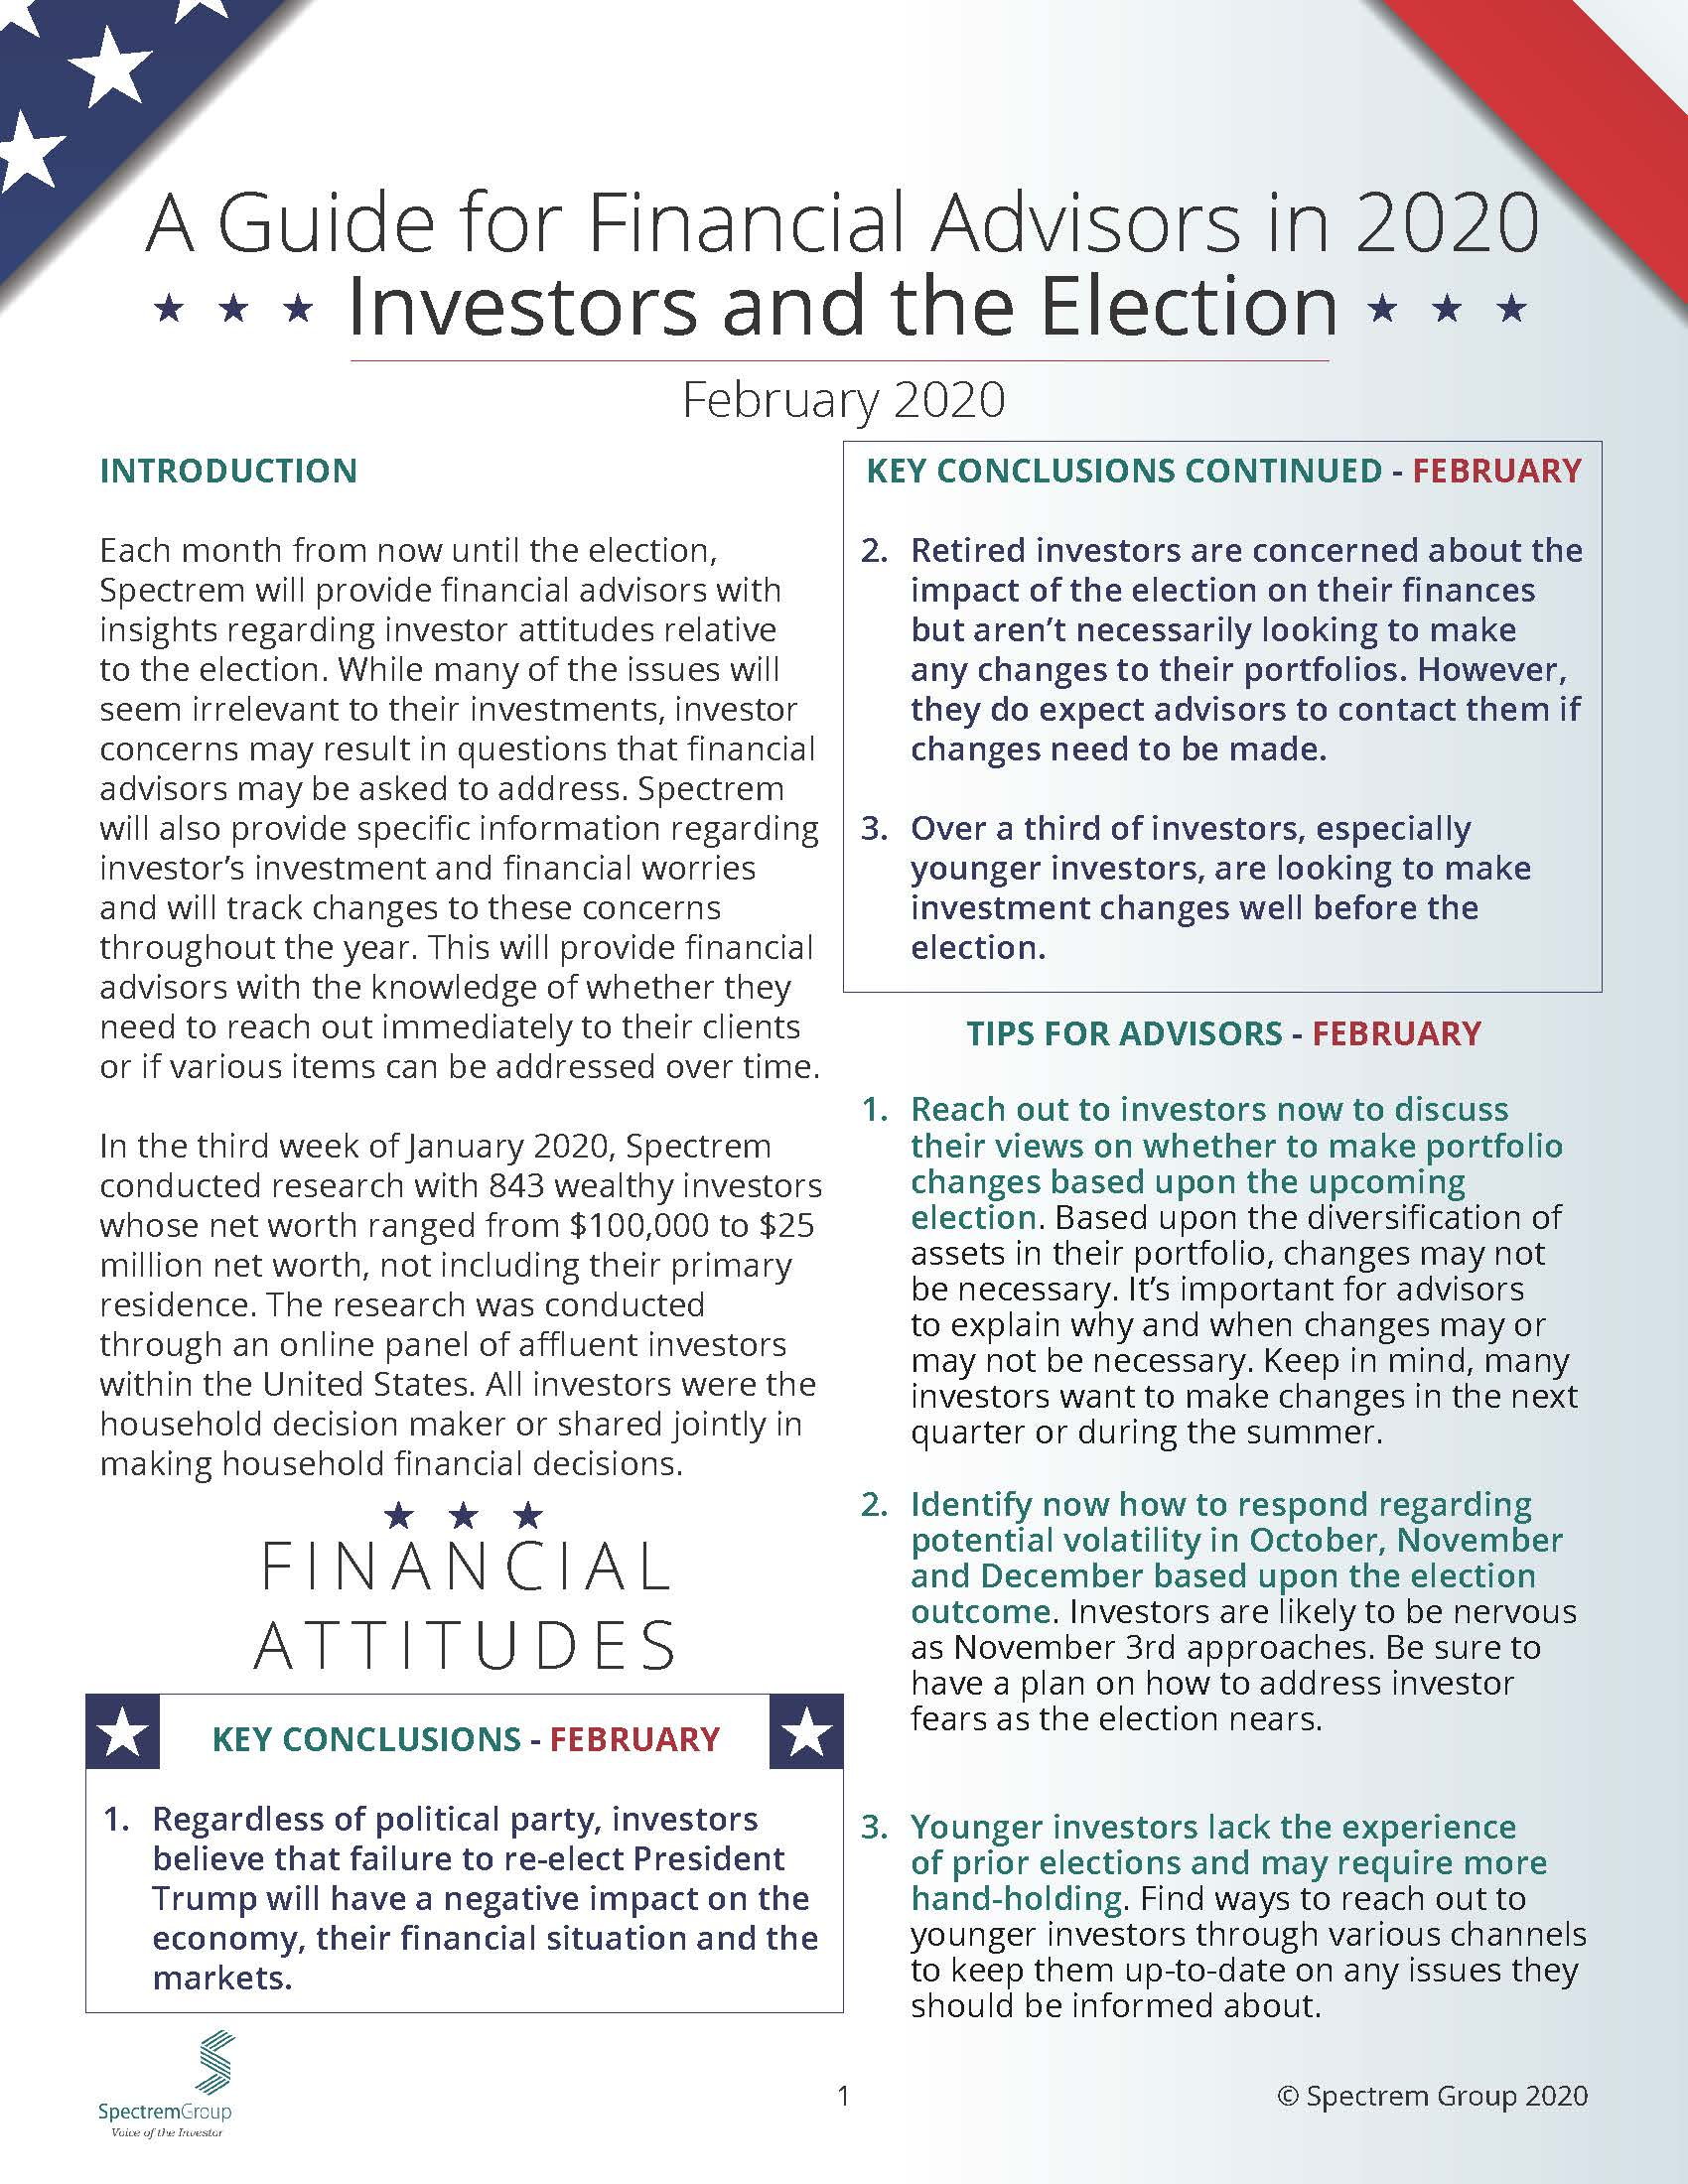 Wealthy Investors and the Election: A Guide for Financial Advisors in 2020 - February